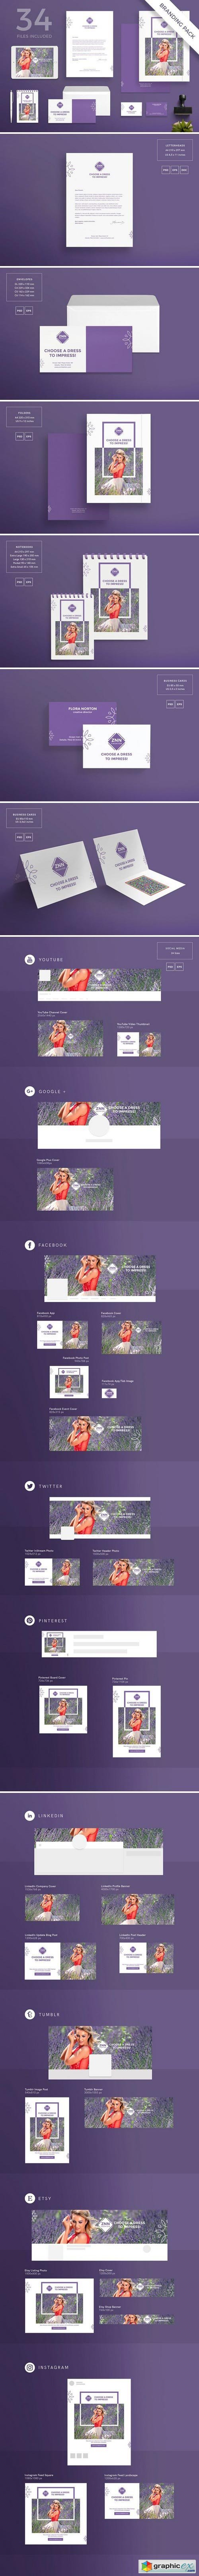 Branding Pack | Choose a Dress